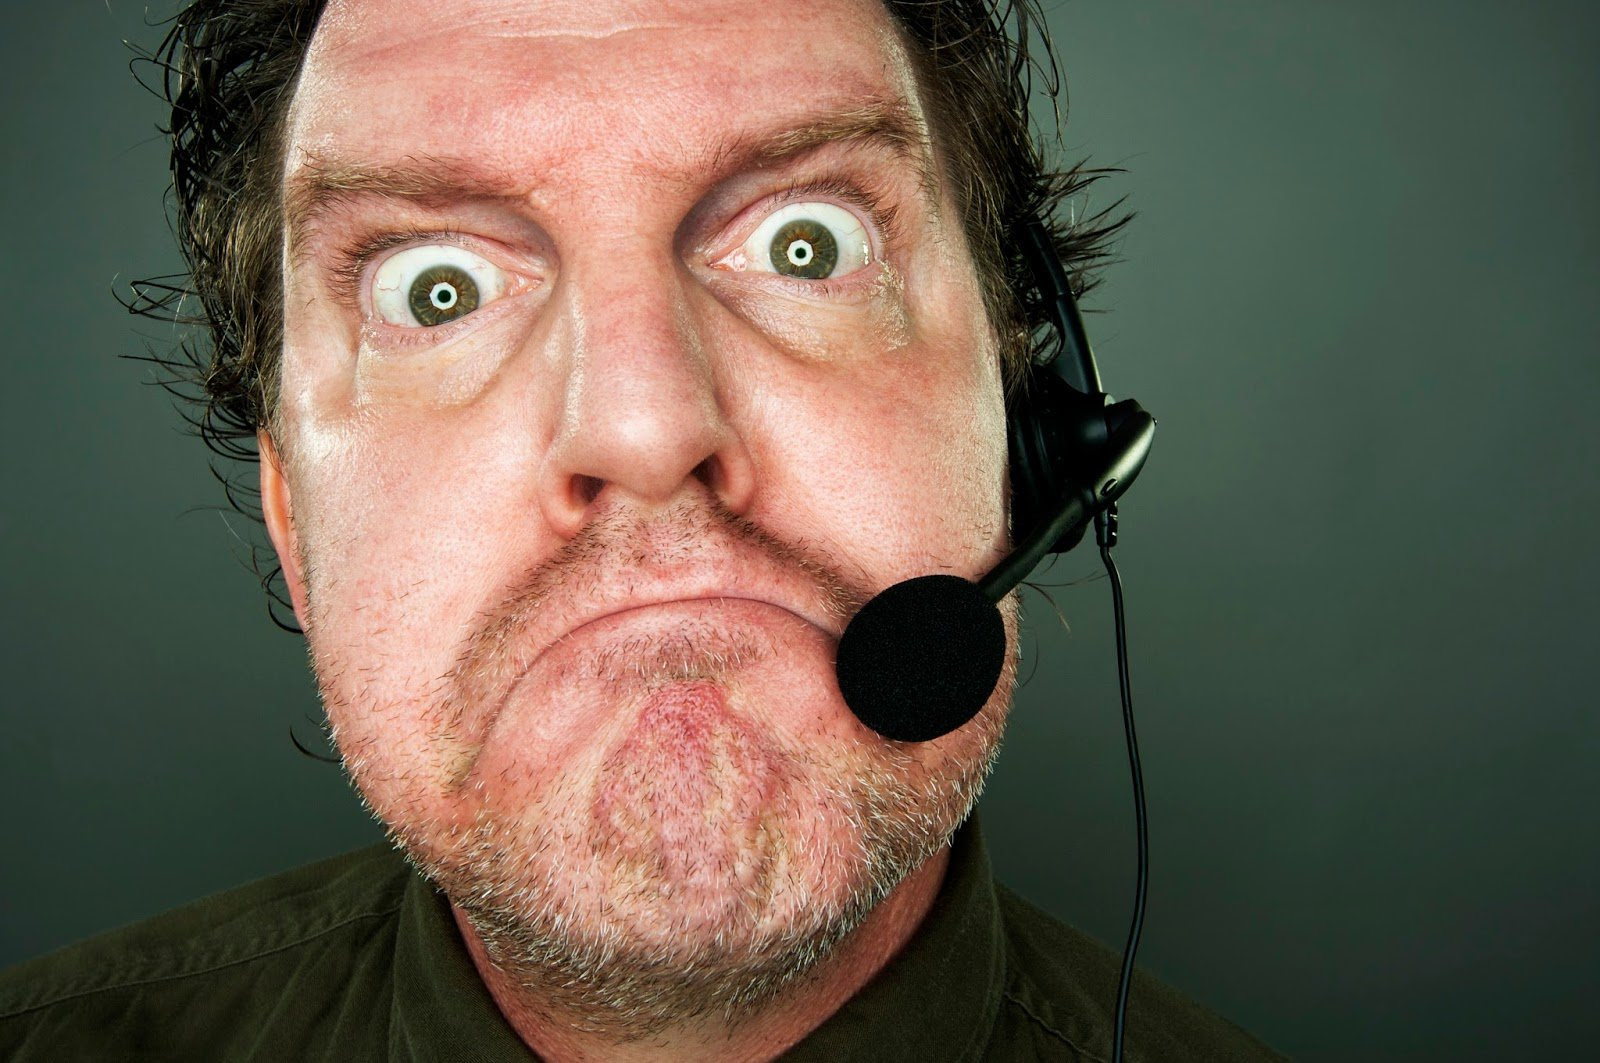 Frowning man with telephone headset.